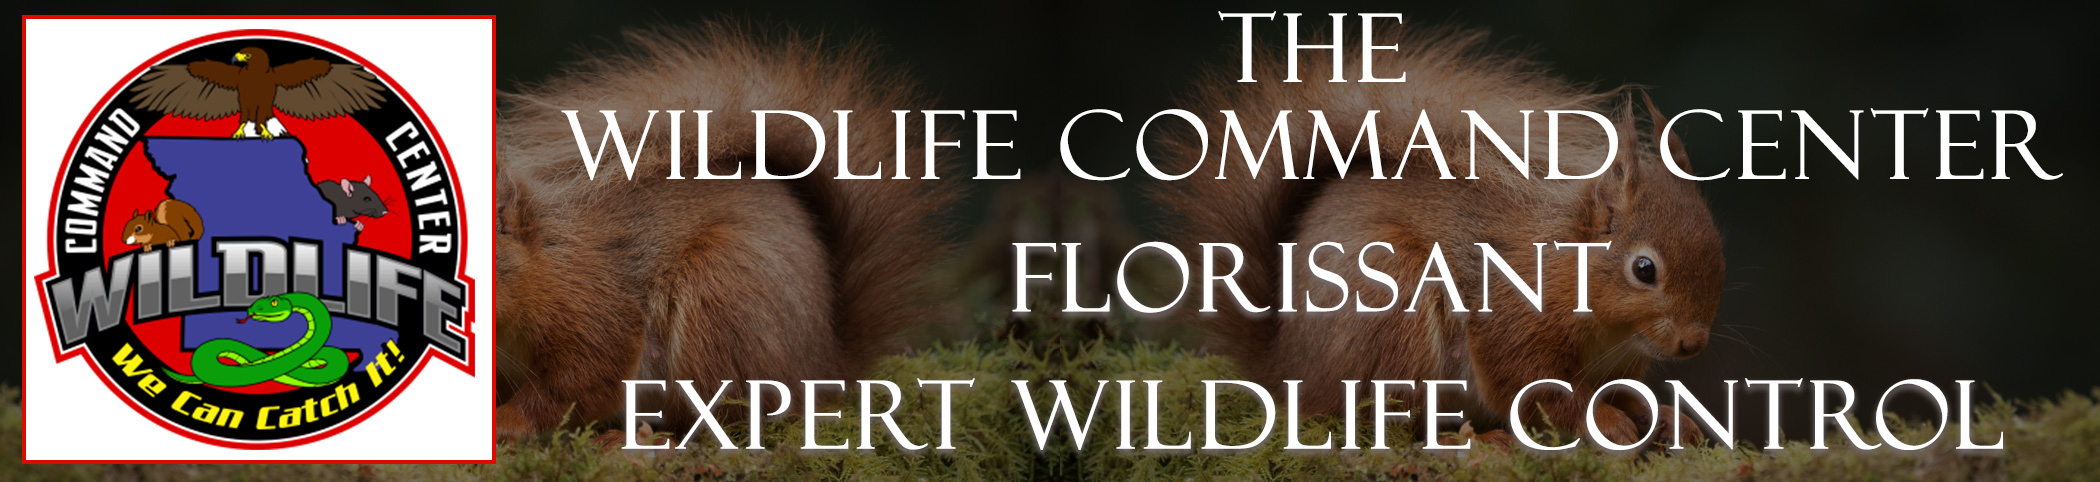 The Wildlife Command Center Florissant Missouri Image